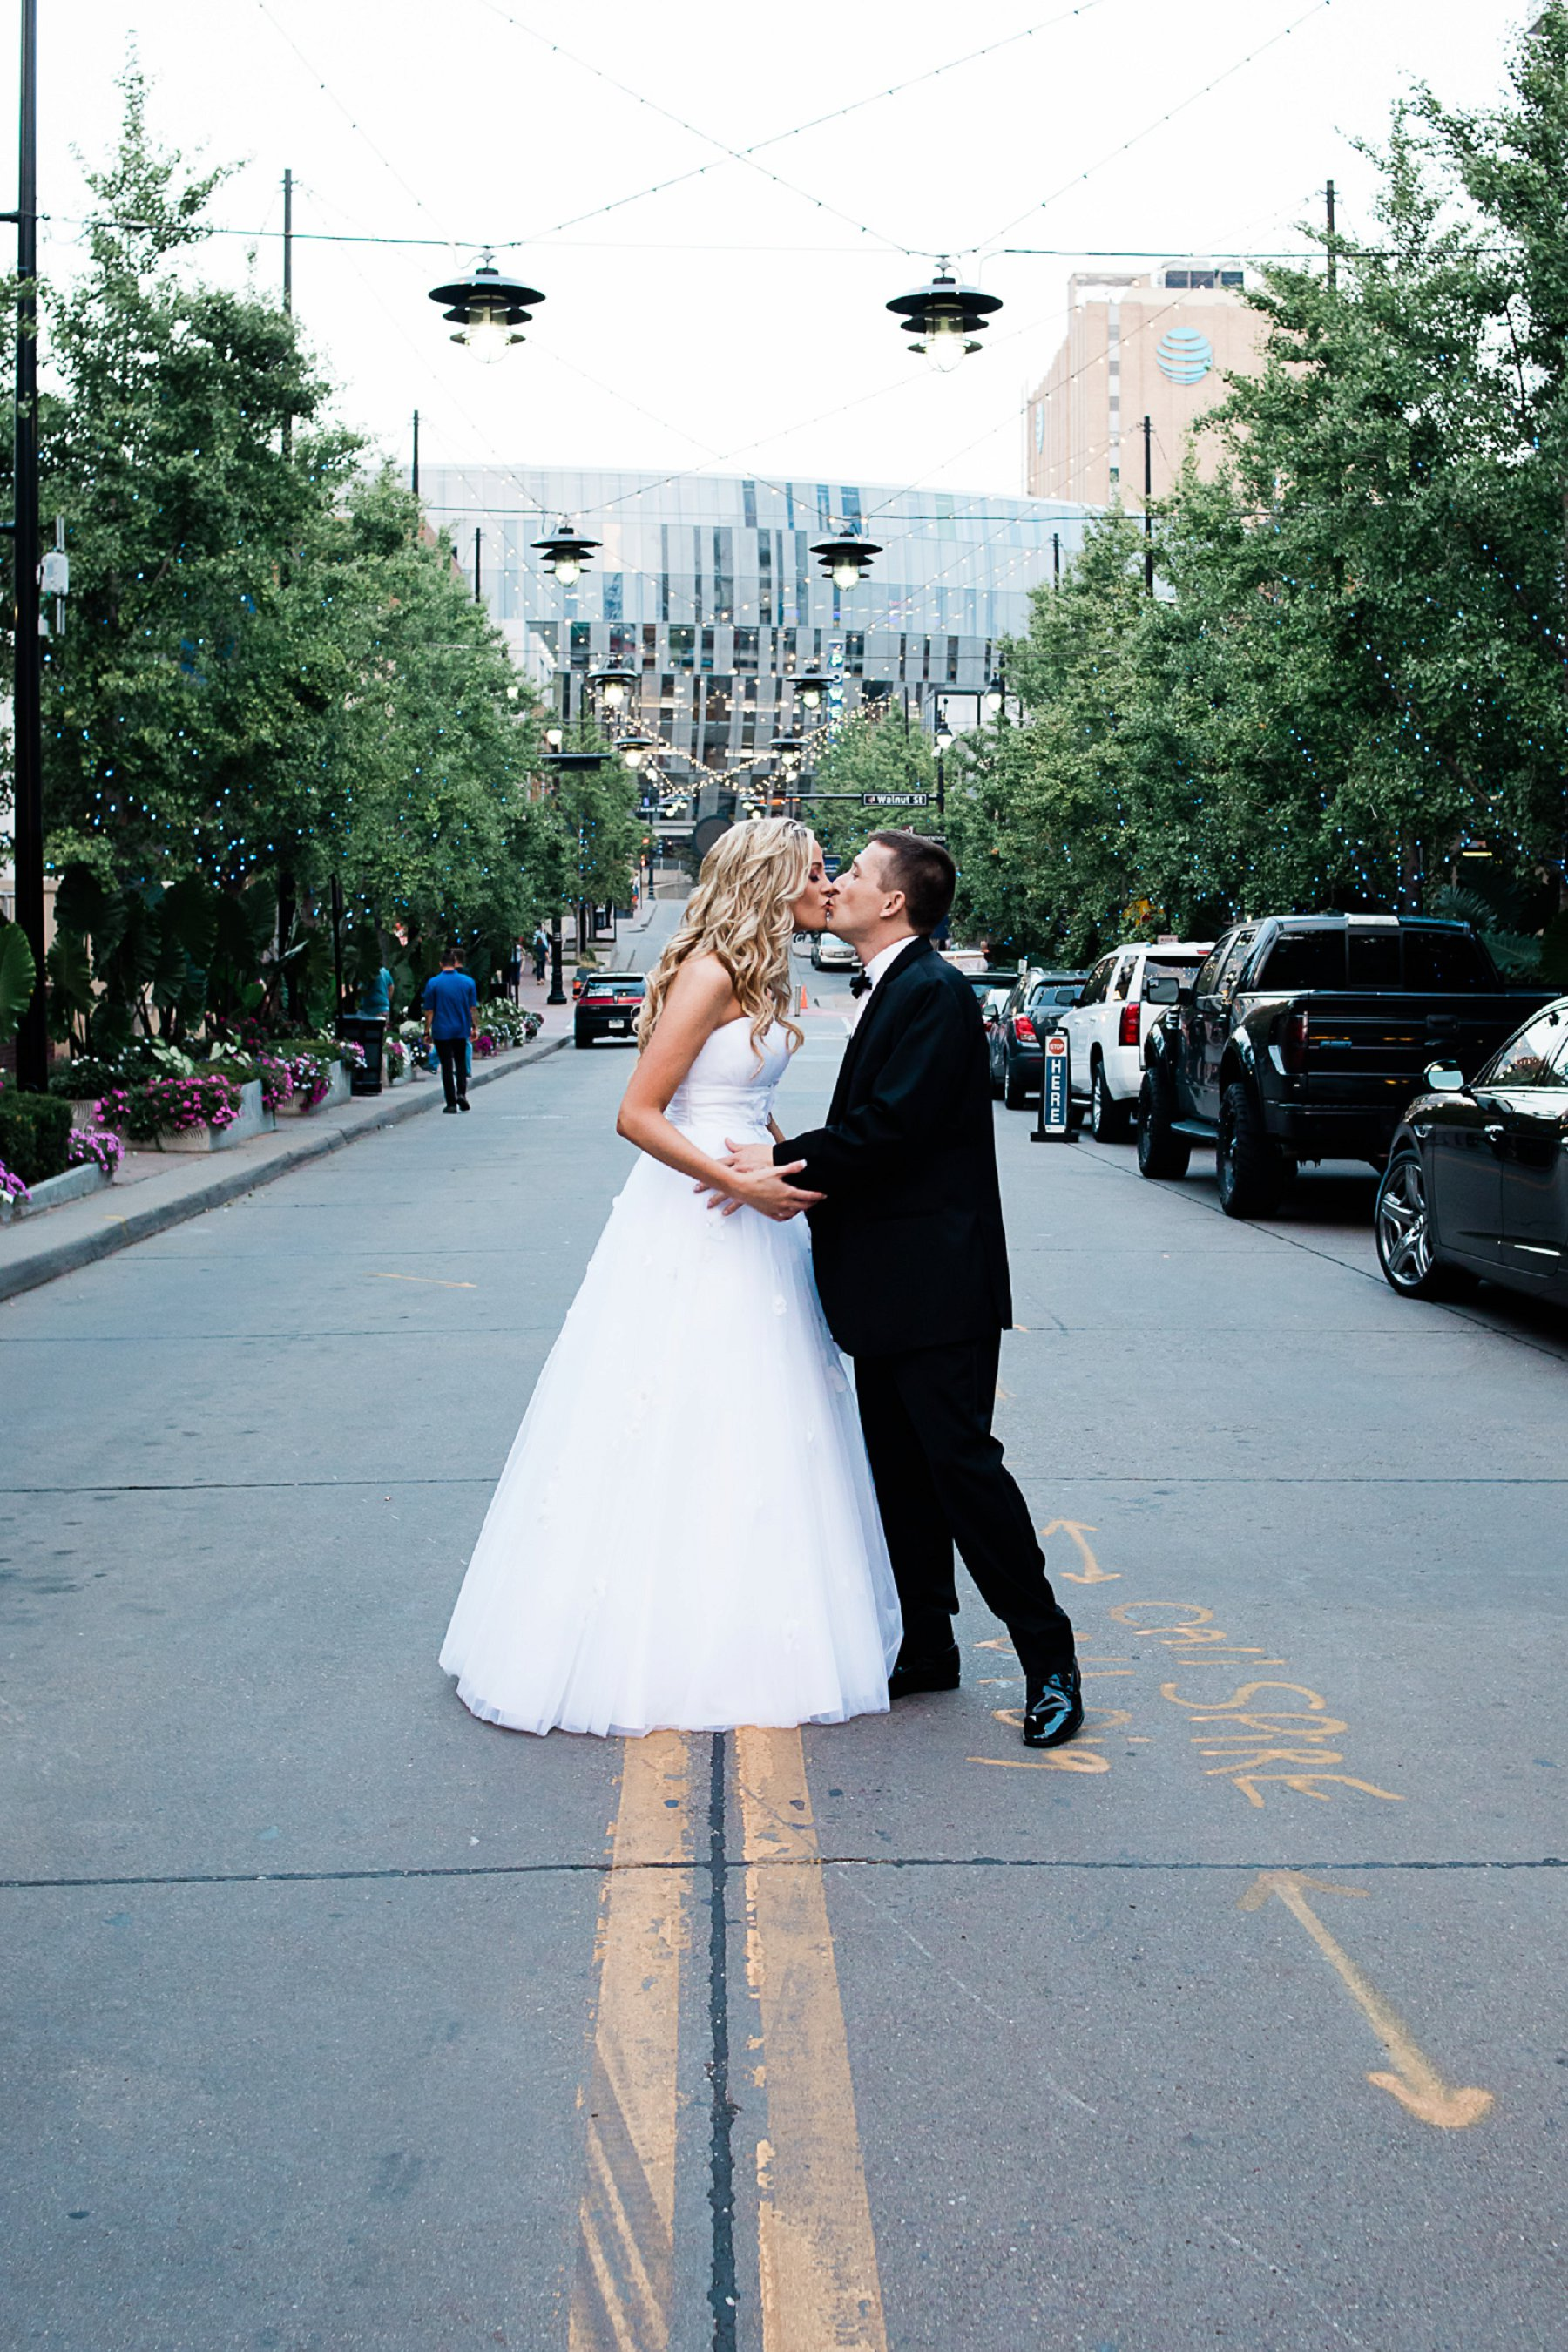 Wedding Portrait in Kansas City Power and Light District by Merry Ohler